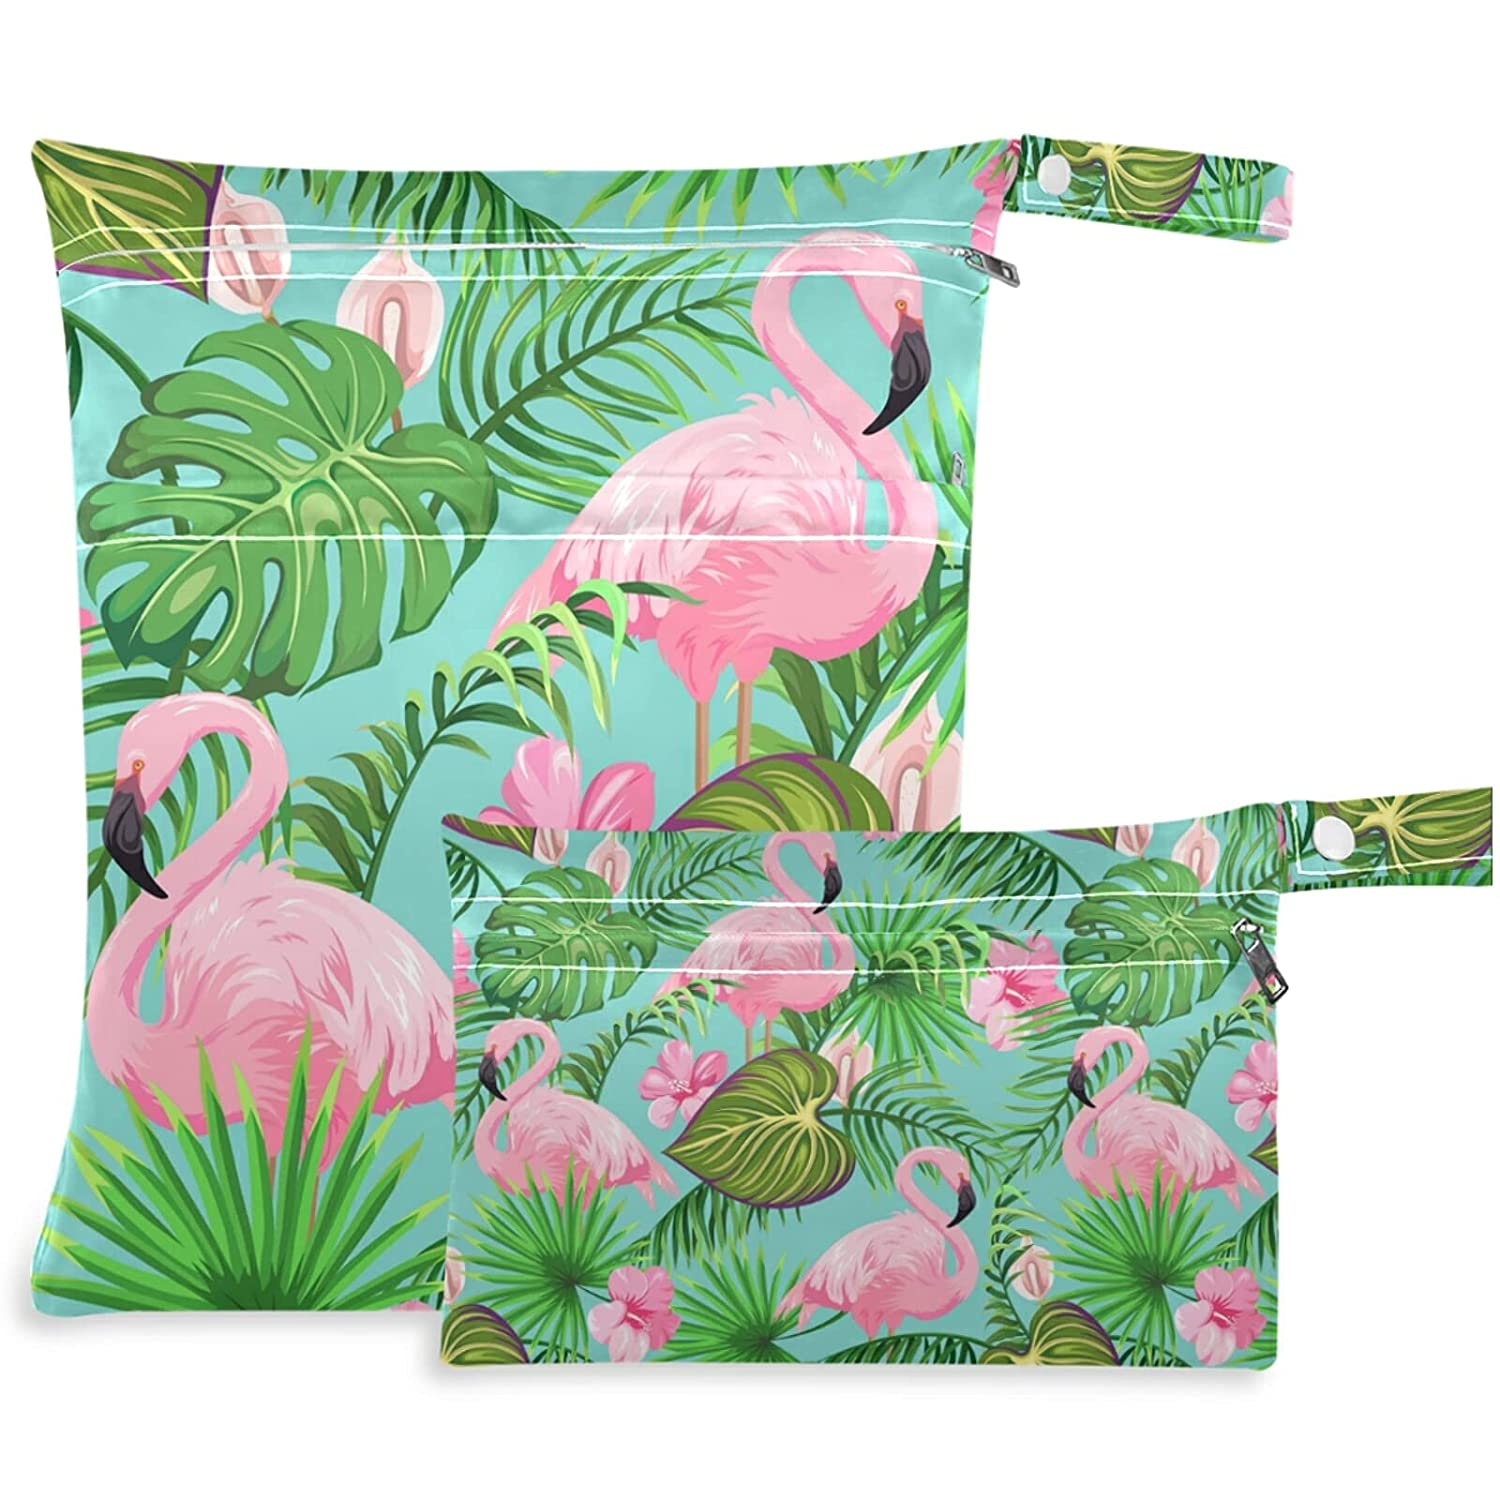 visesunny Tropical Flamingo Palm Leaf Bag 2Pcs Wet ! Super beauty product restock quality top! with Zippered Max 57% OFF